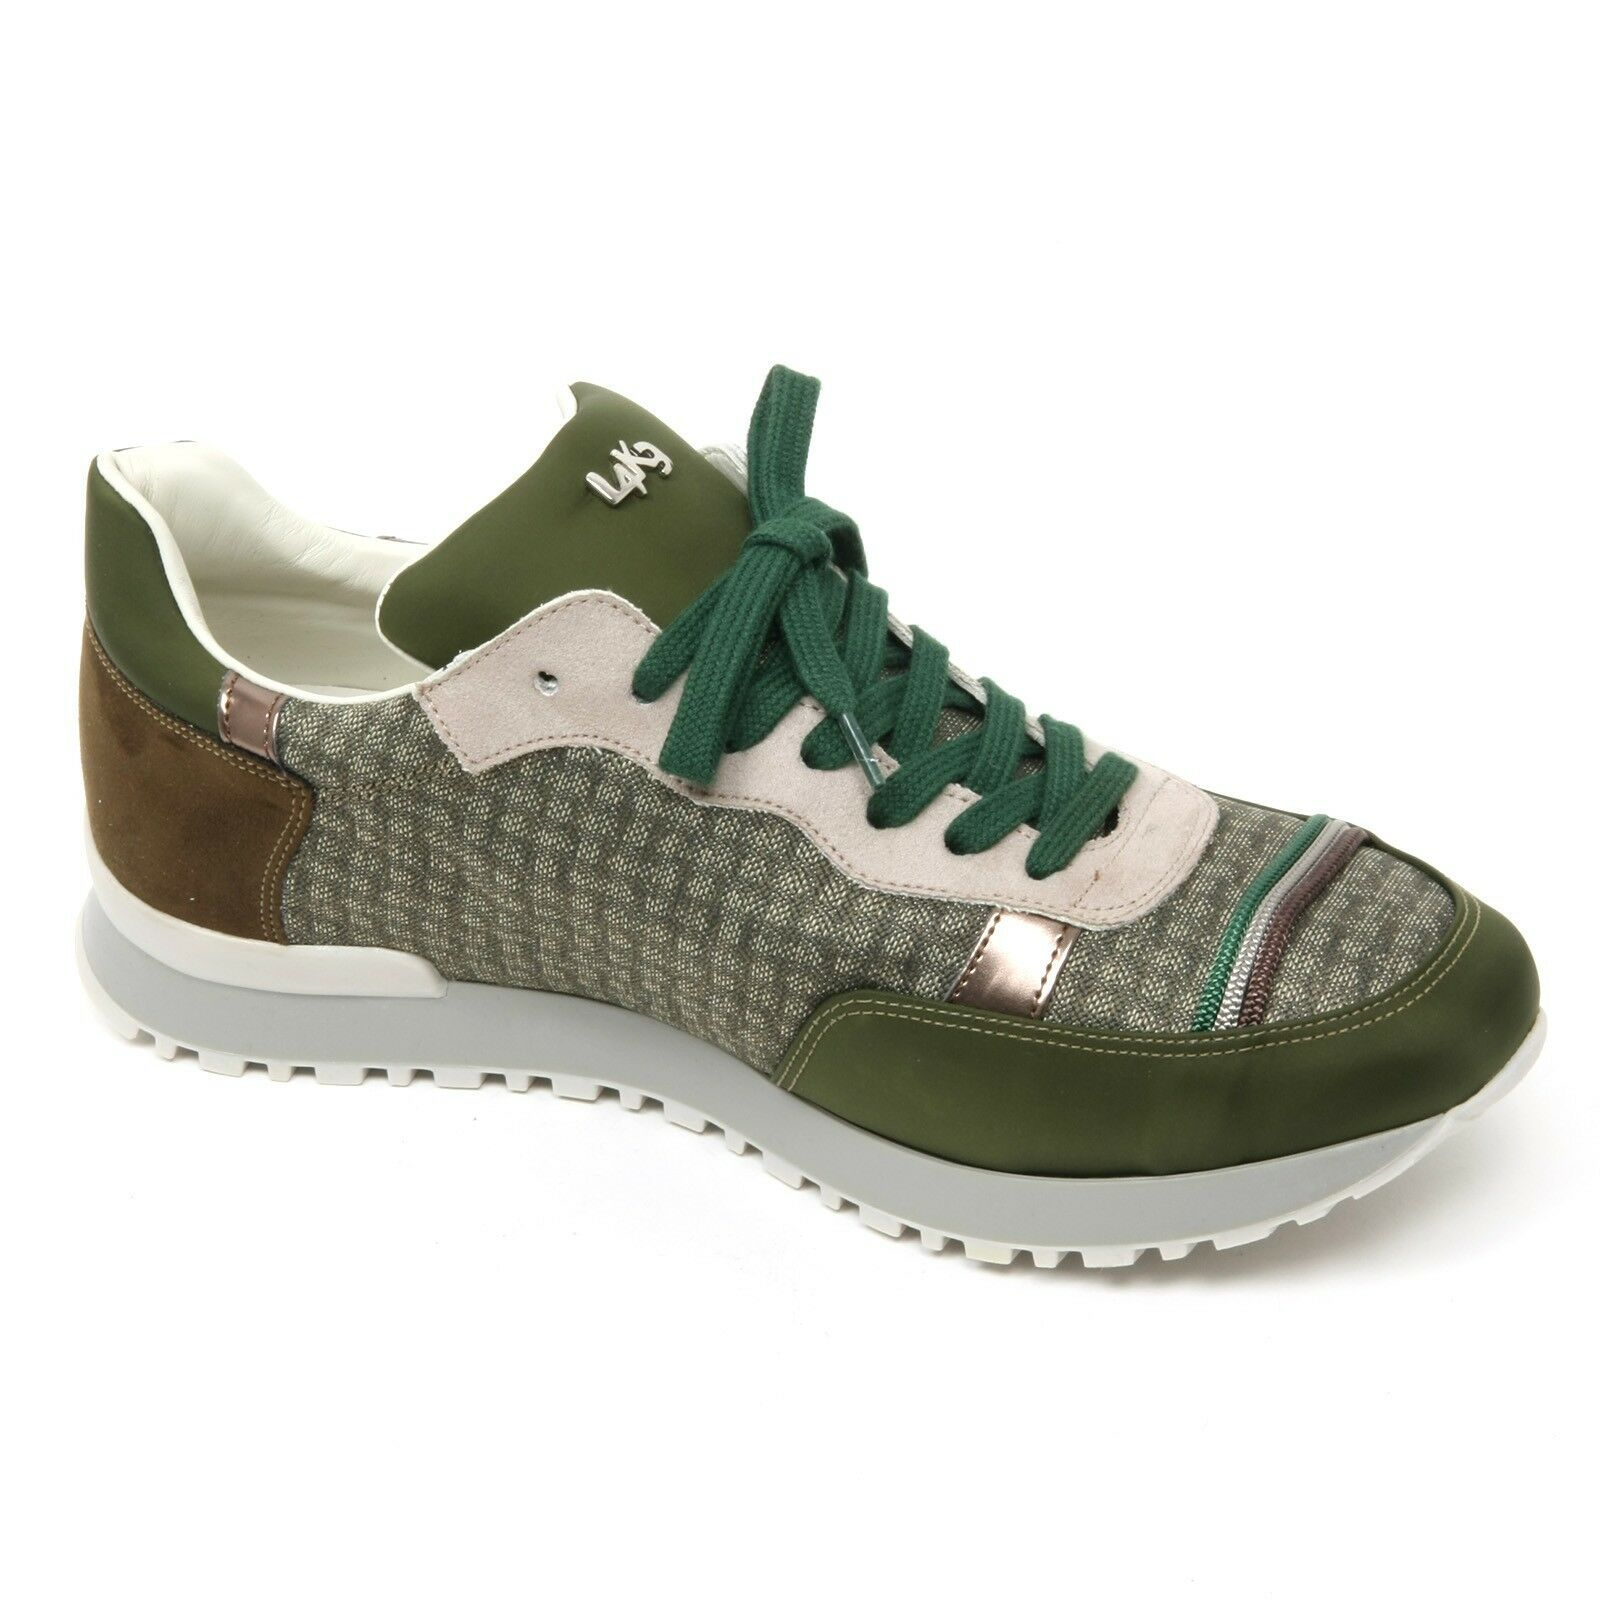 B9304 B9304 B9304 sneaker uomo L4K3 MR BIG scarpa quadretto verde/marrone shoe man 05af33